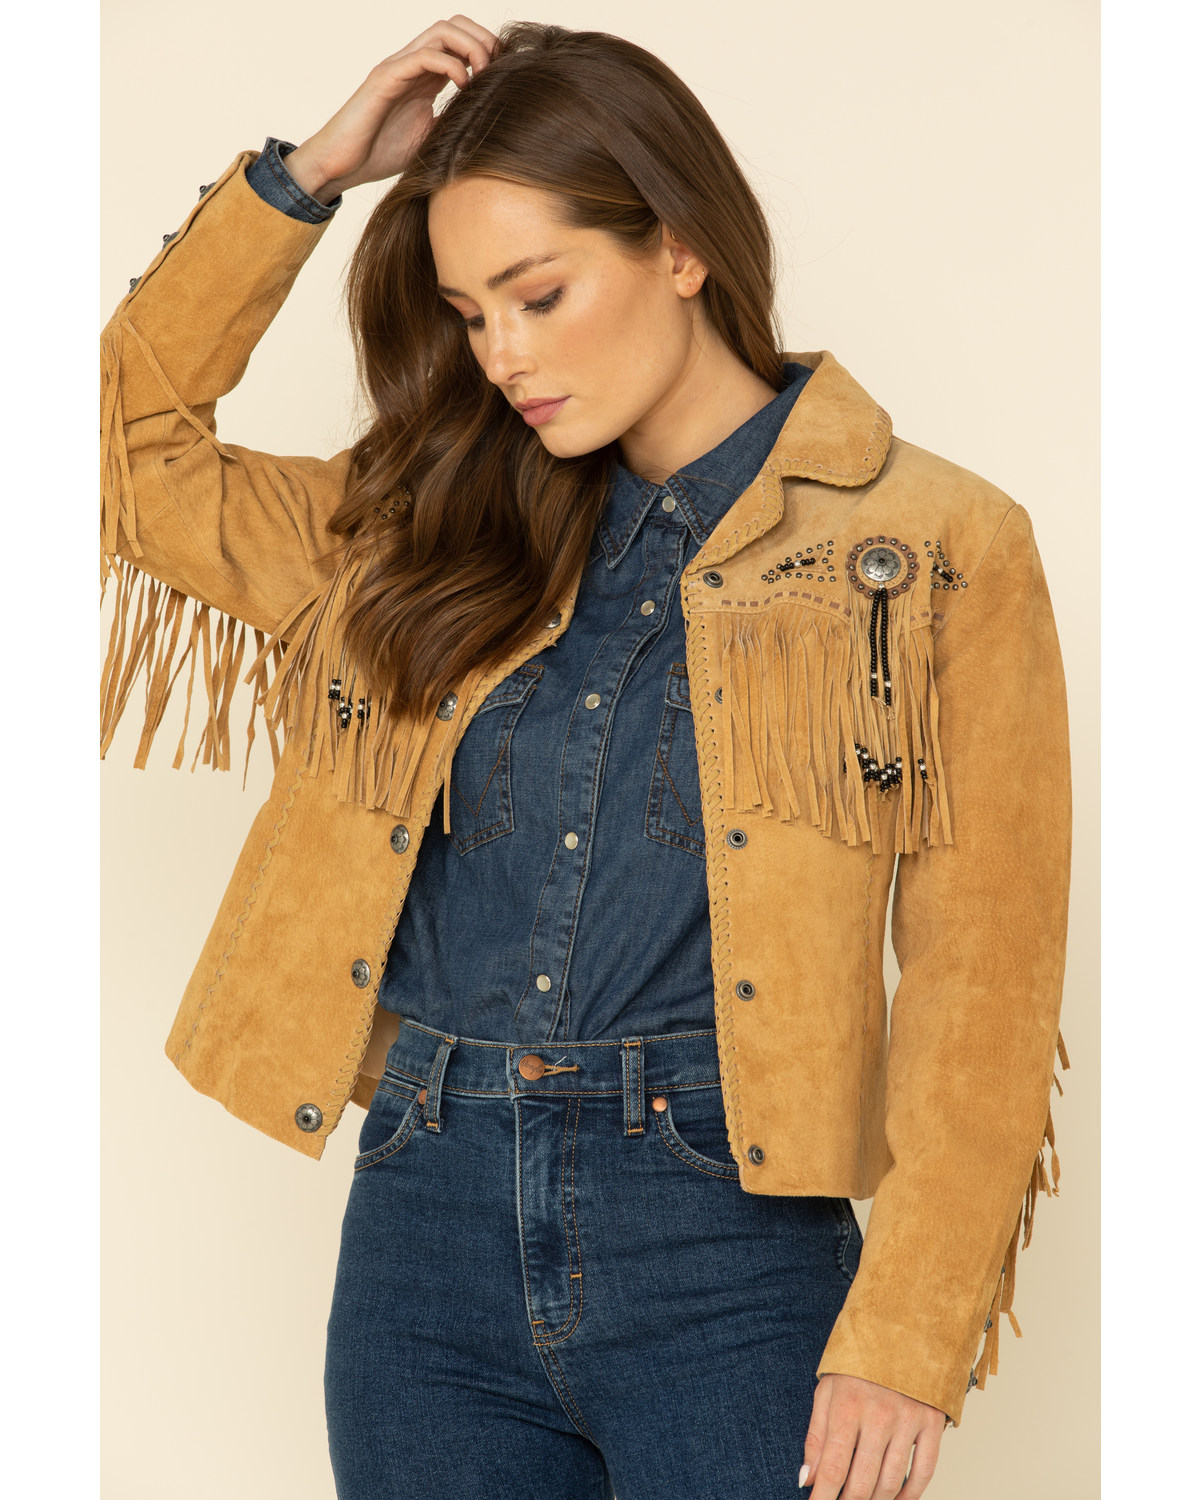 c4a454baa5f9 Scully Women s Suede Leather Fringe Jacket